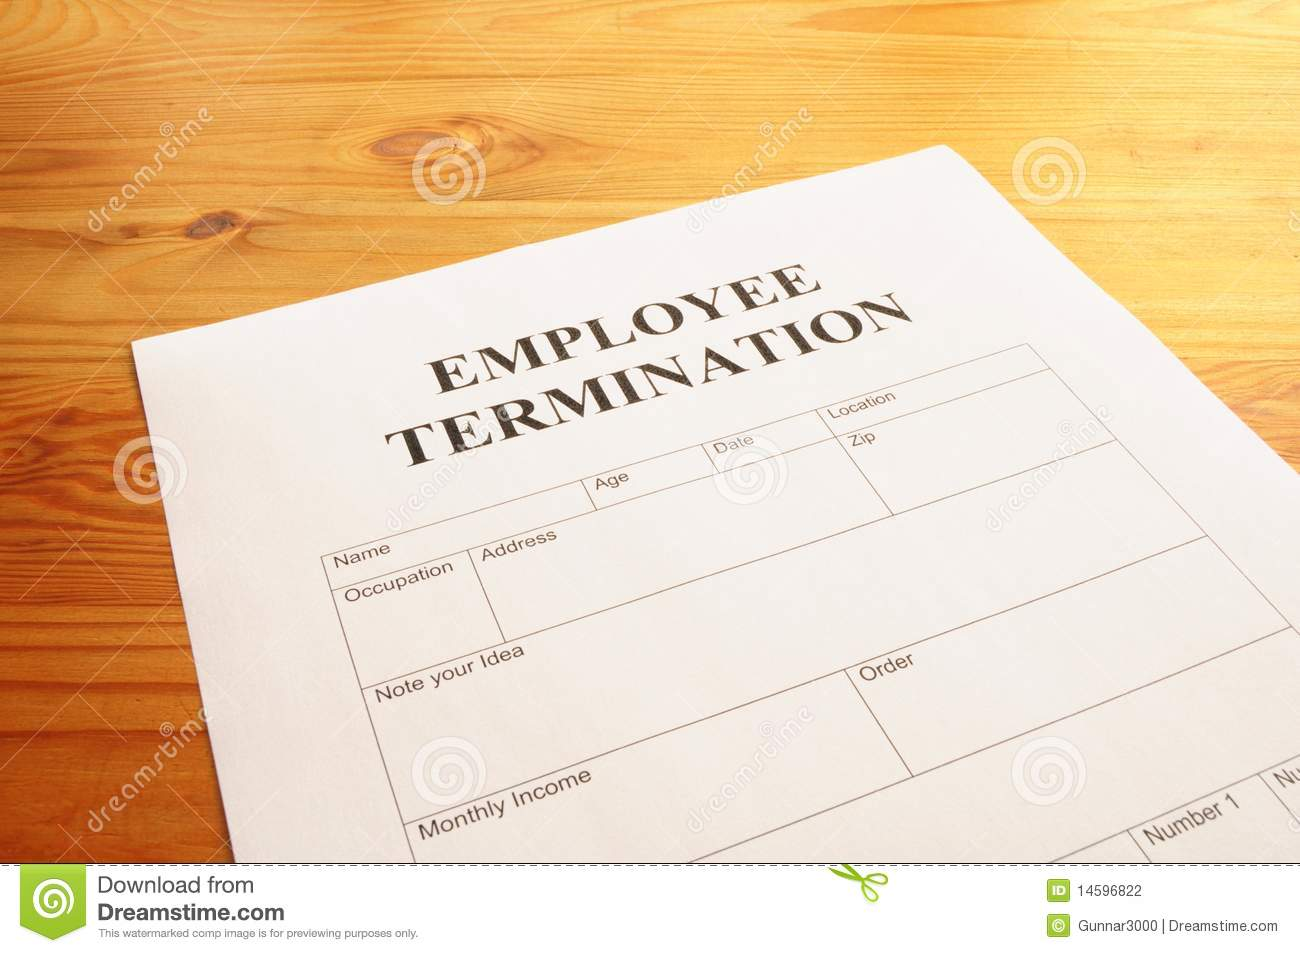 Incentive stock options termination of employment